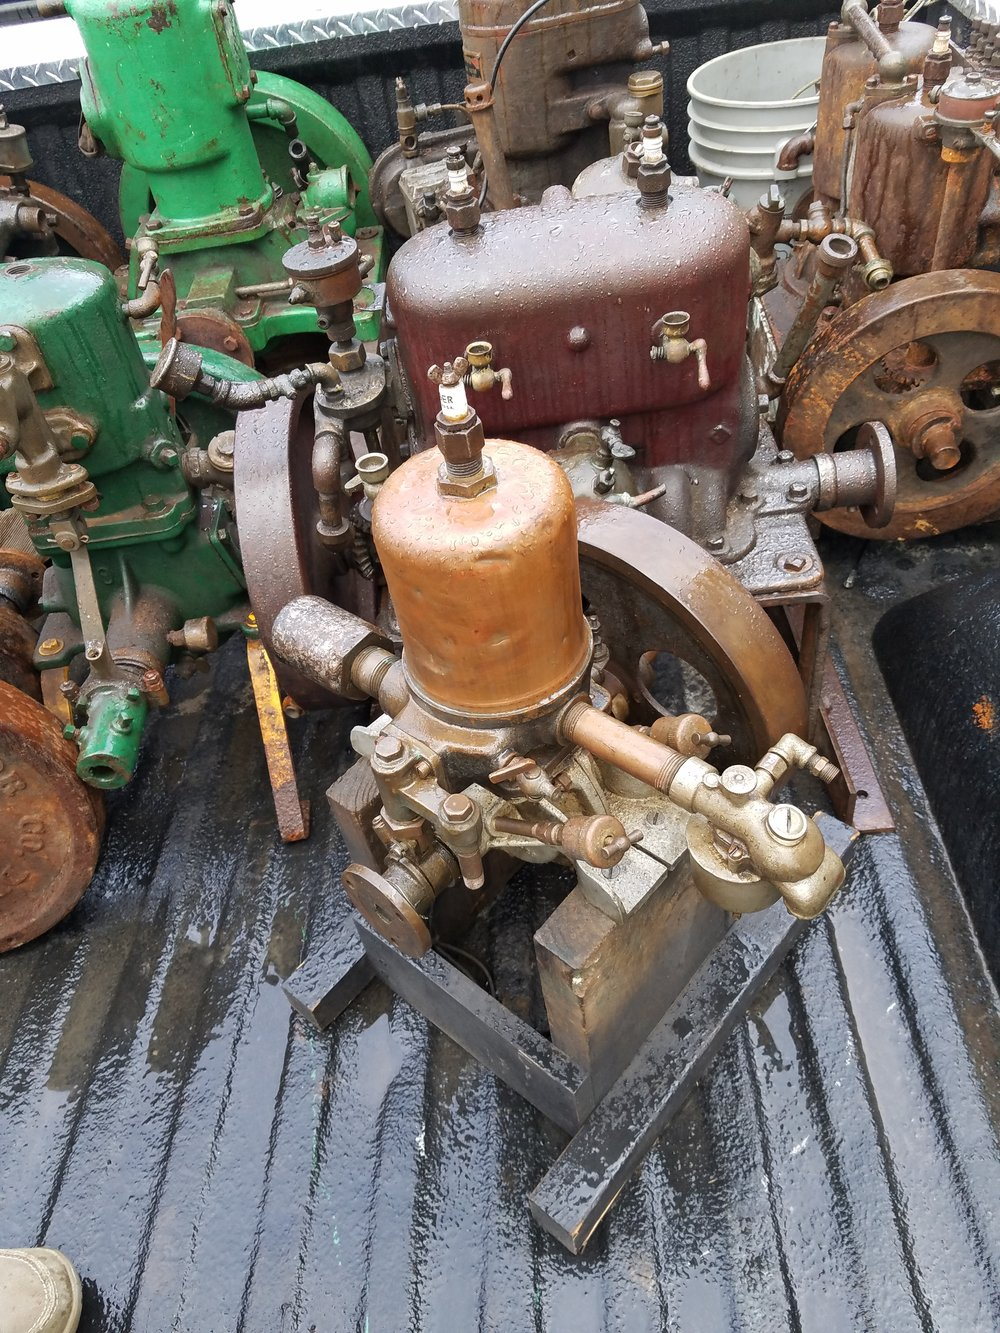 Drove to Michigan to score these little engines. Awesome old marine engines. These will be so much fun to restore! Snapped a few quick pictures, before we got them out of the rain. Perfect weather, until I rolled into the driveway. Murphy's Law!